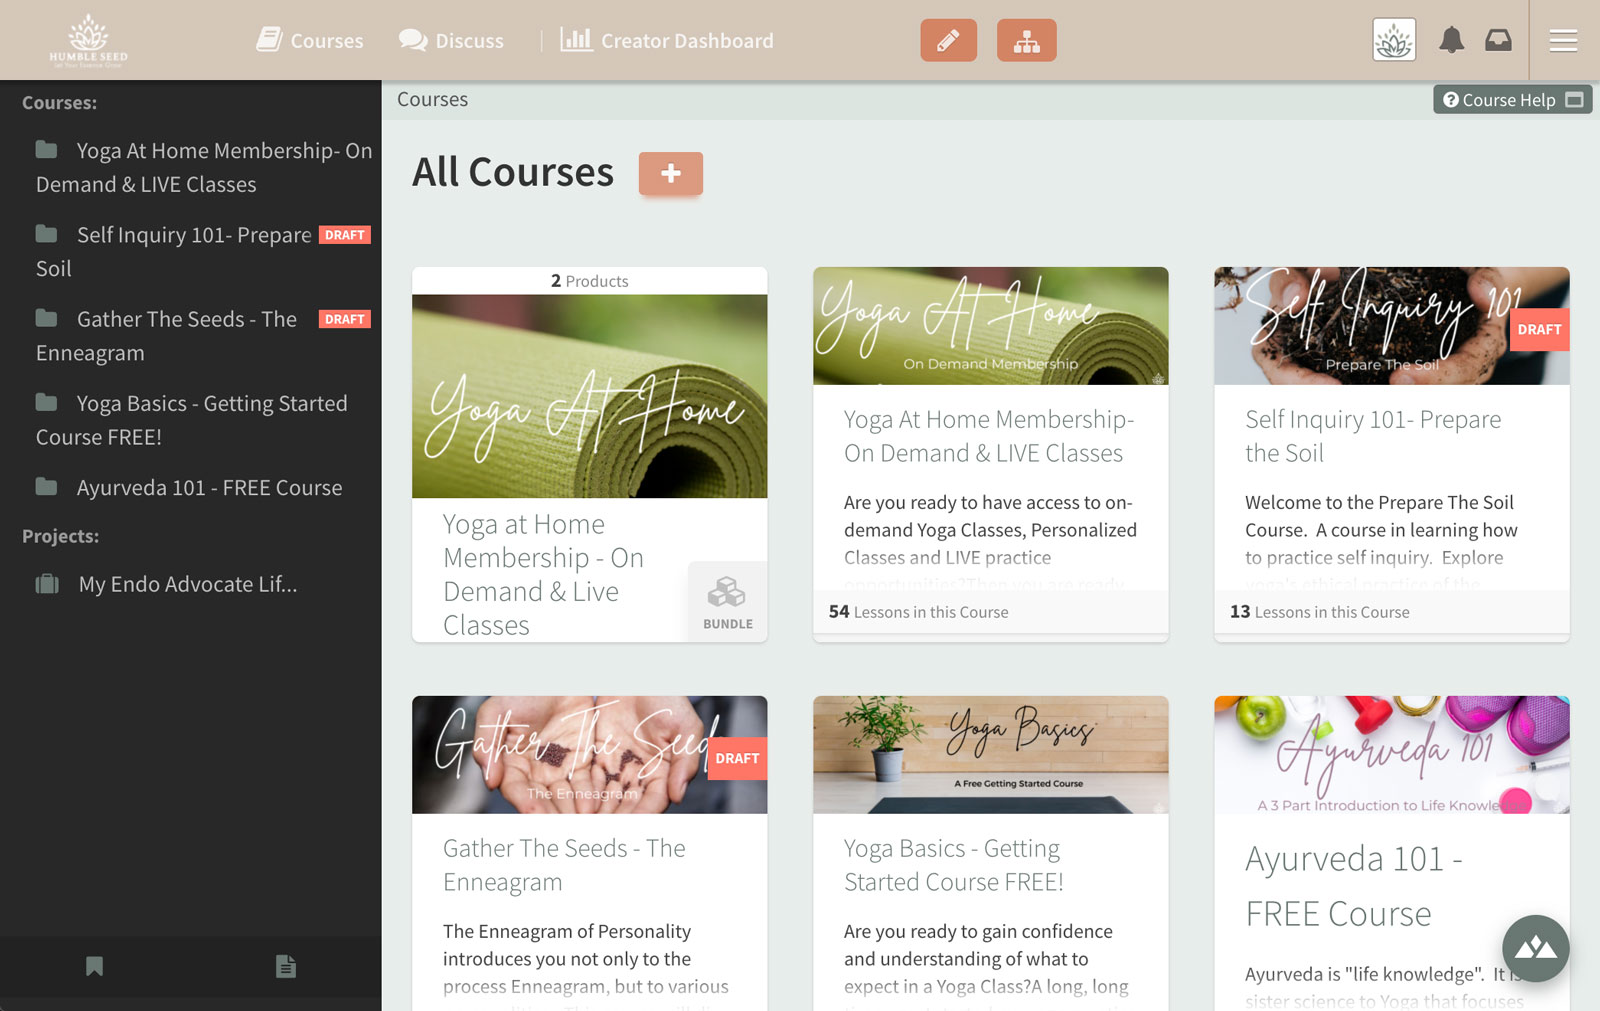 Course creation software product list for online yoga course